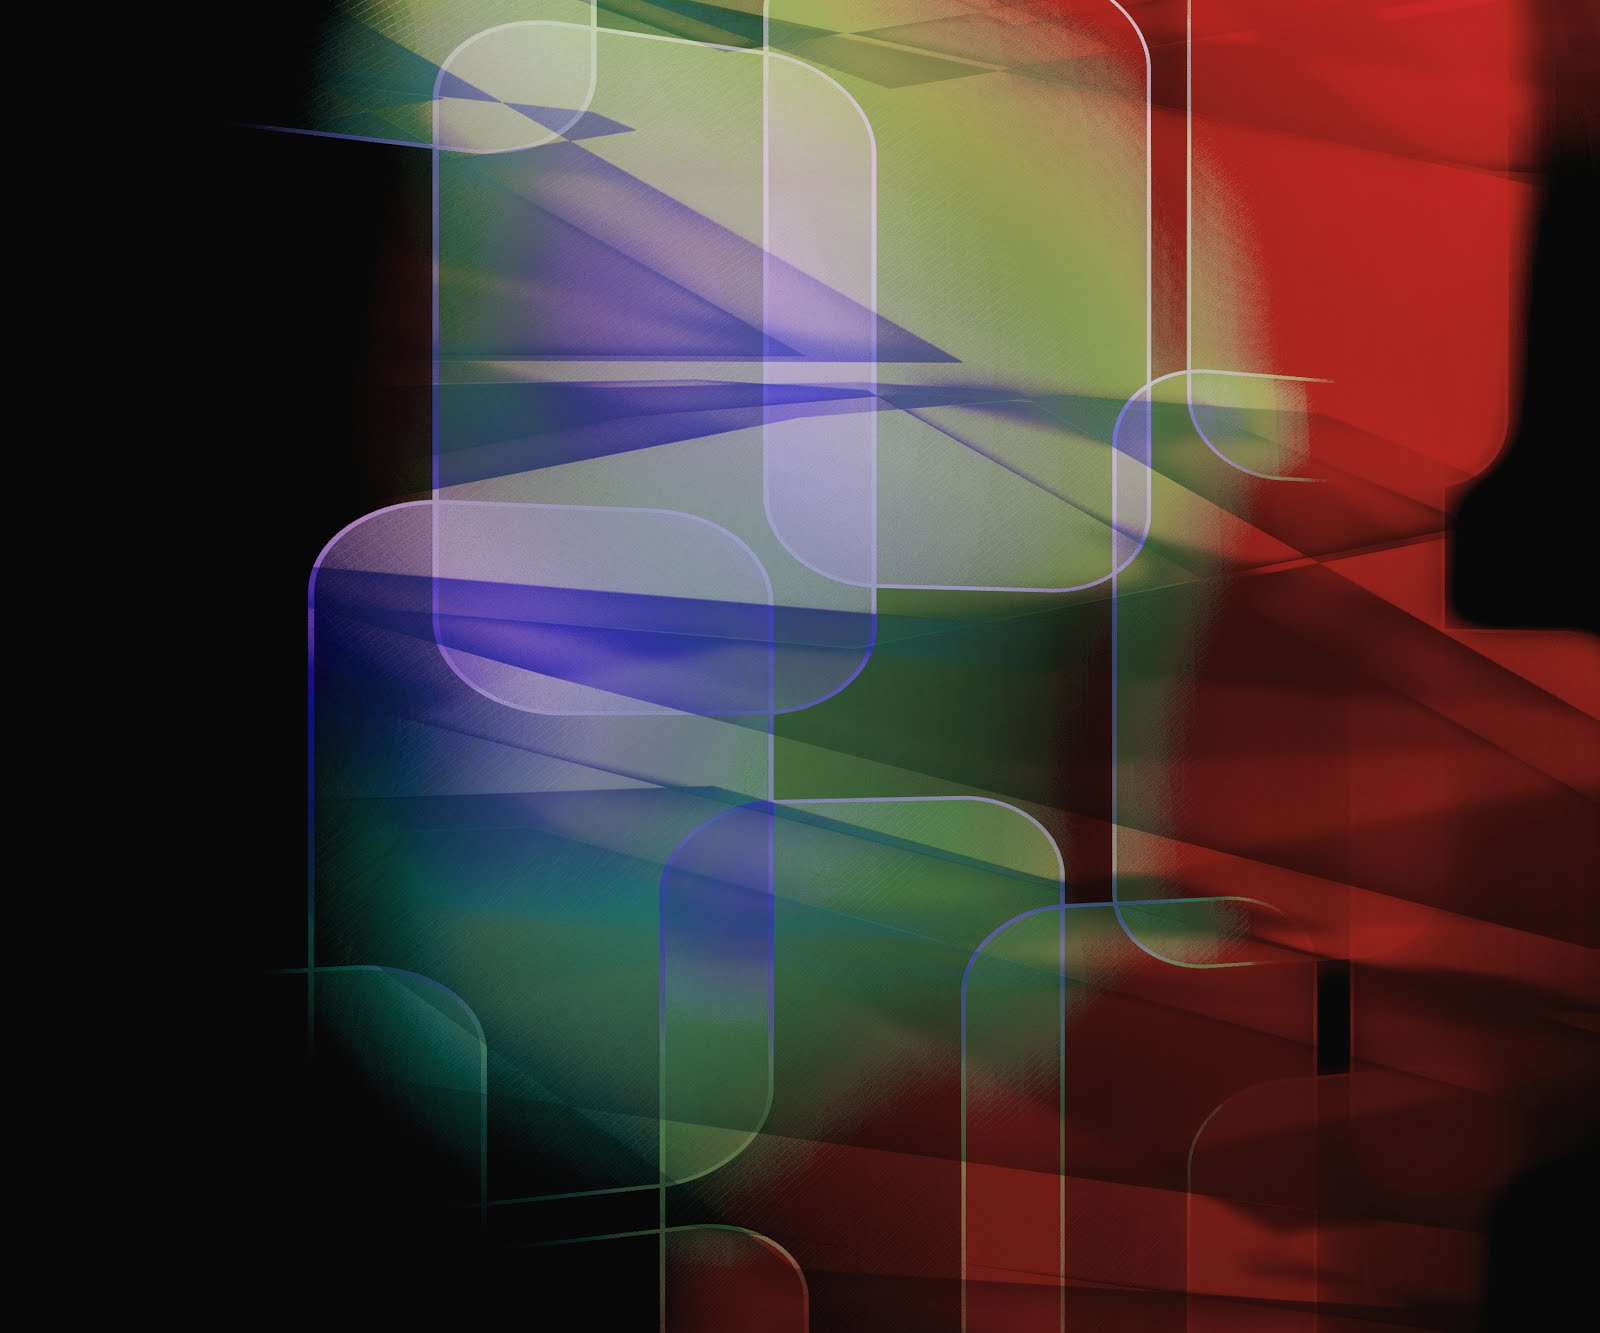 Colorfull Abstract background